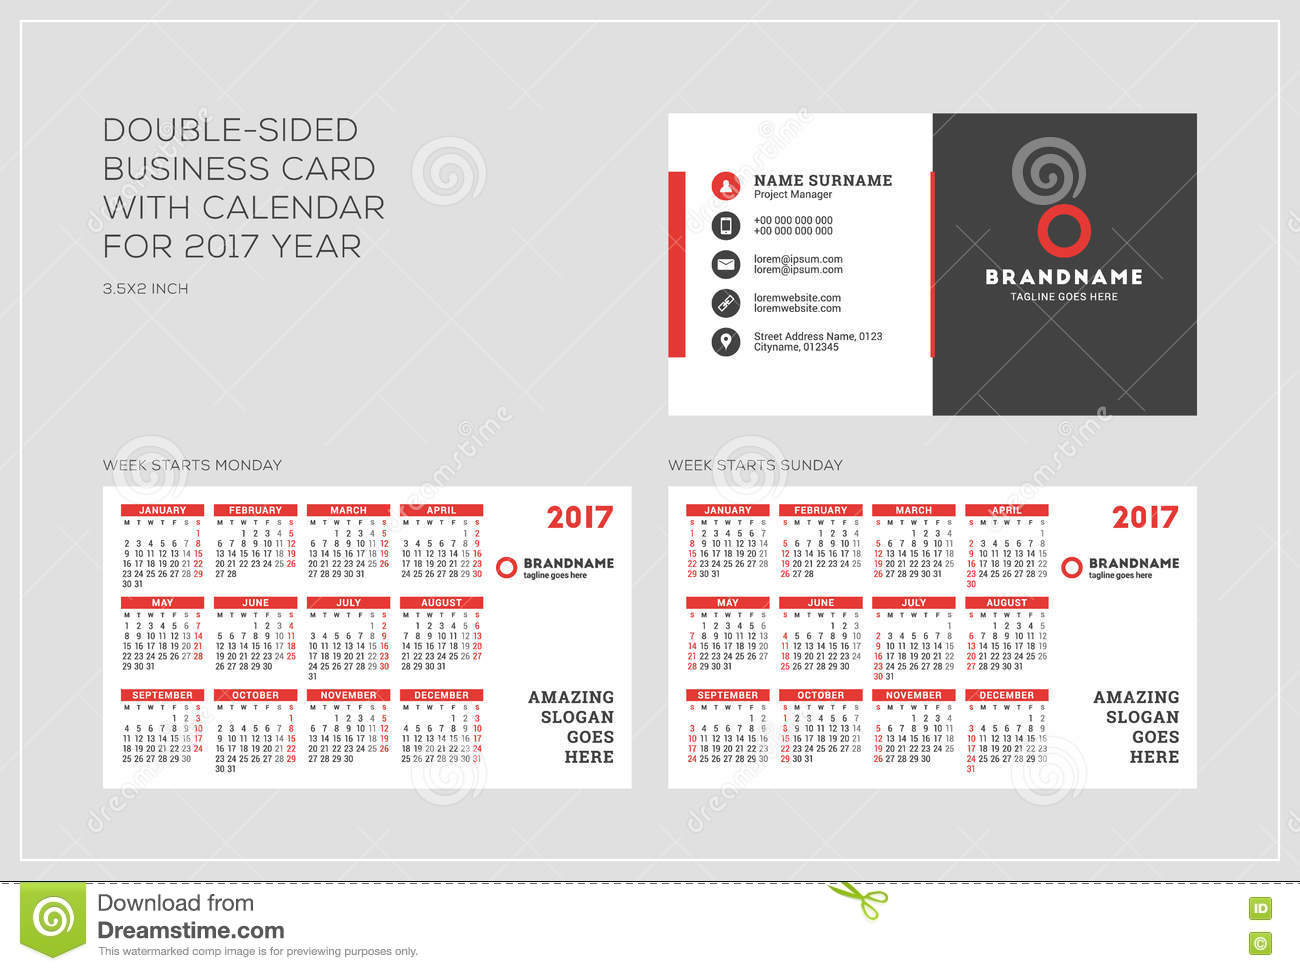 Double sided business card template with calendar for 2017 year double sided business card template with calendar for 2017 year week starts monday flashek